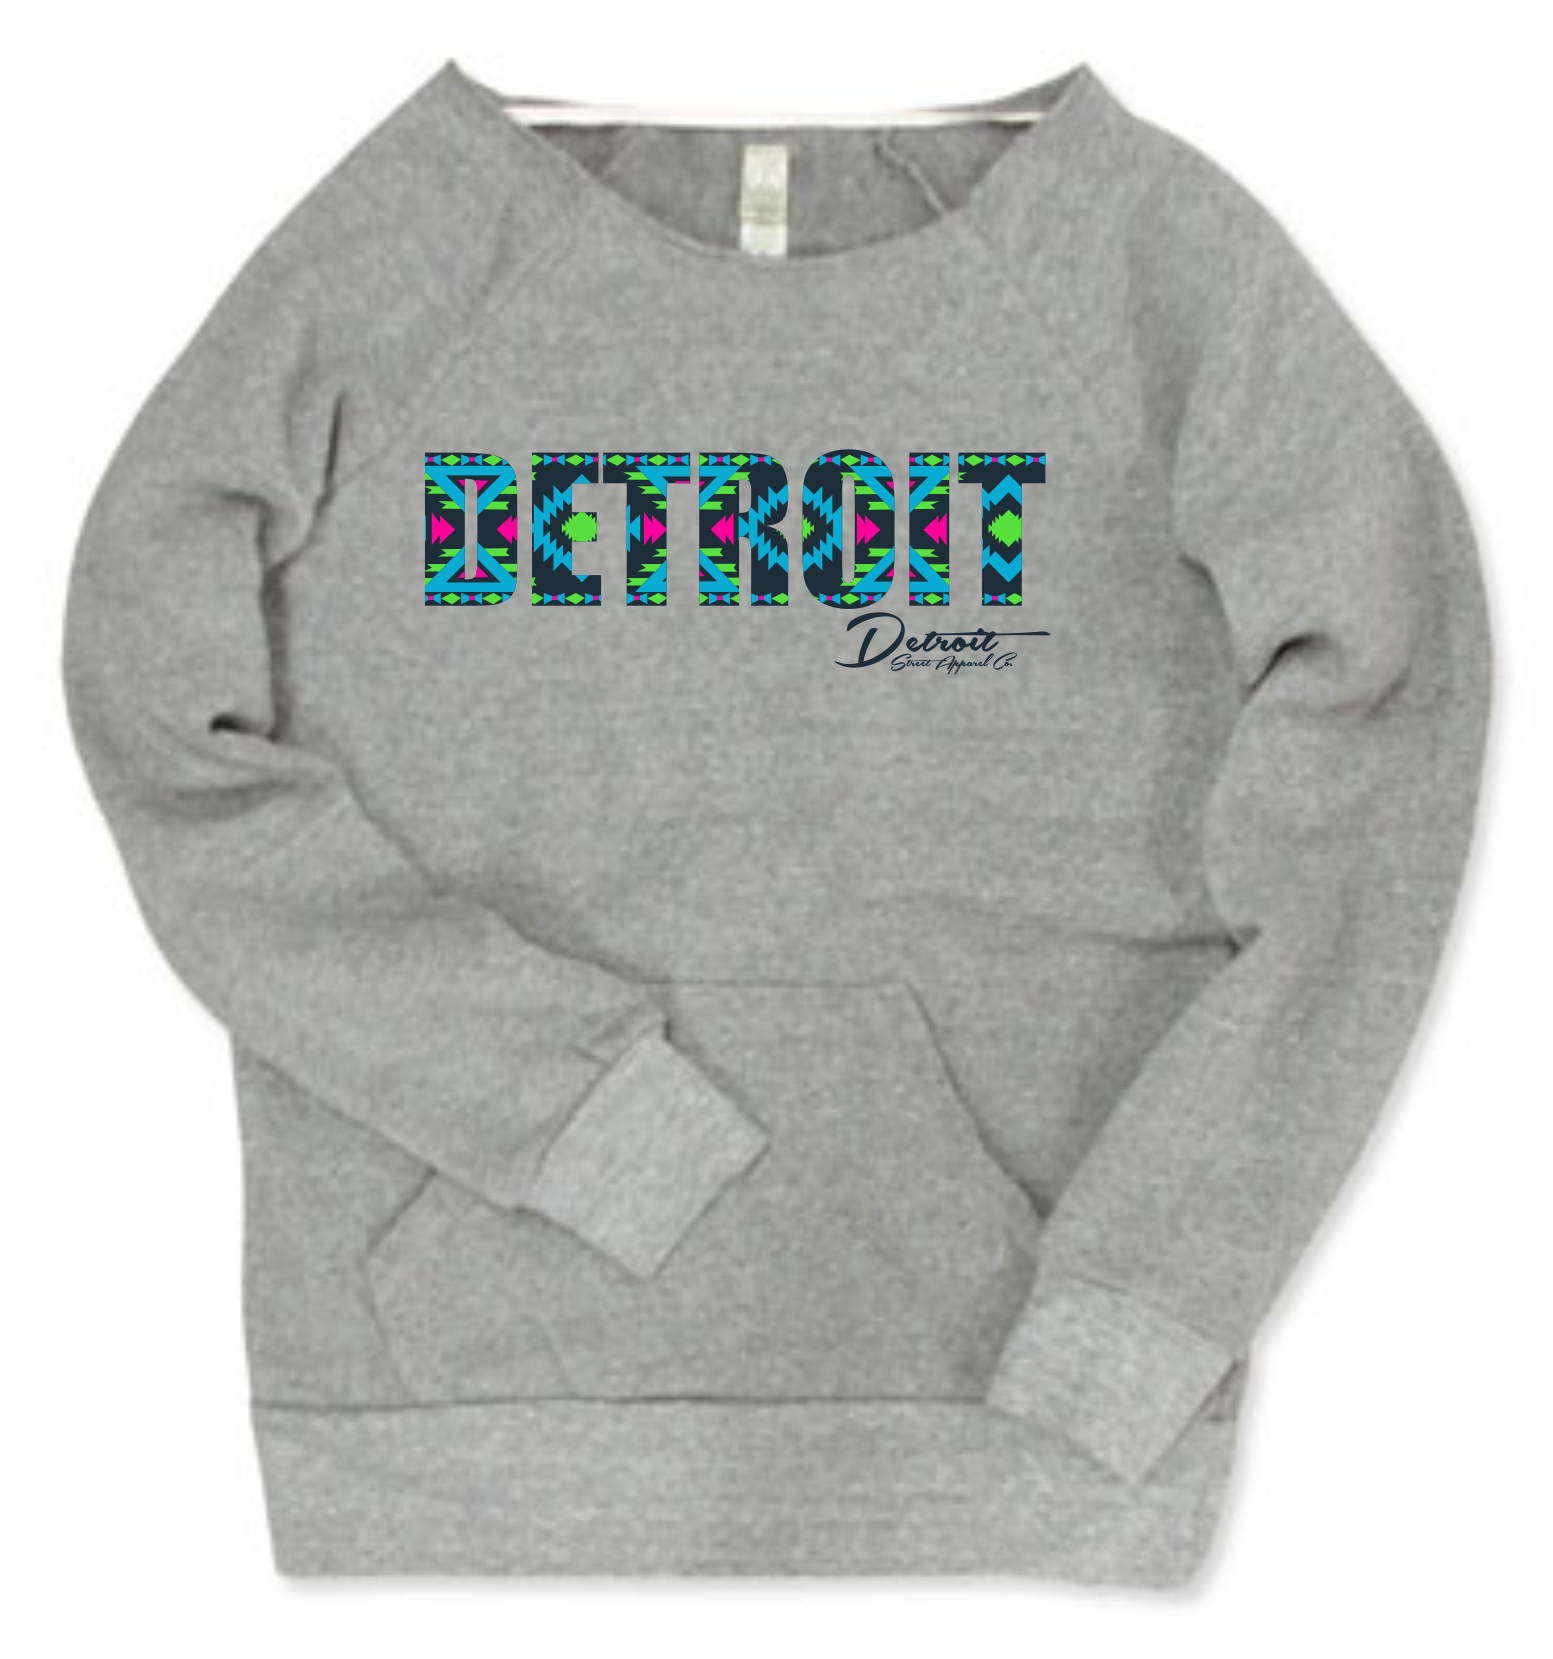 Detroit Street Apparel Ladies Aztek Print Sweatshirt